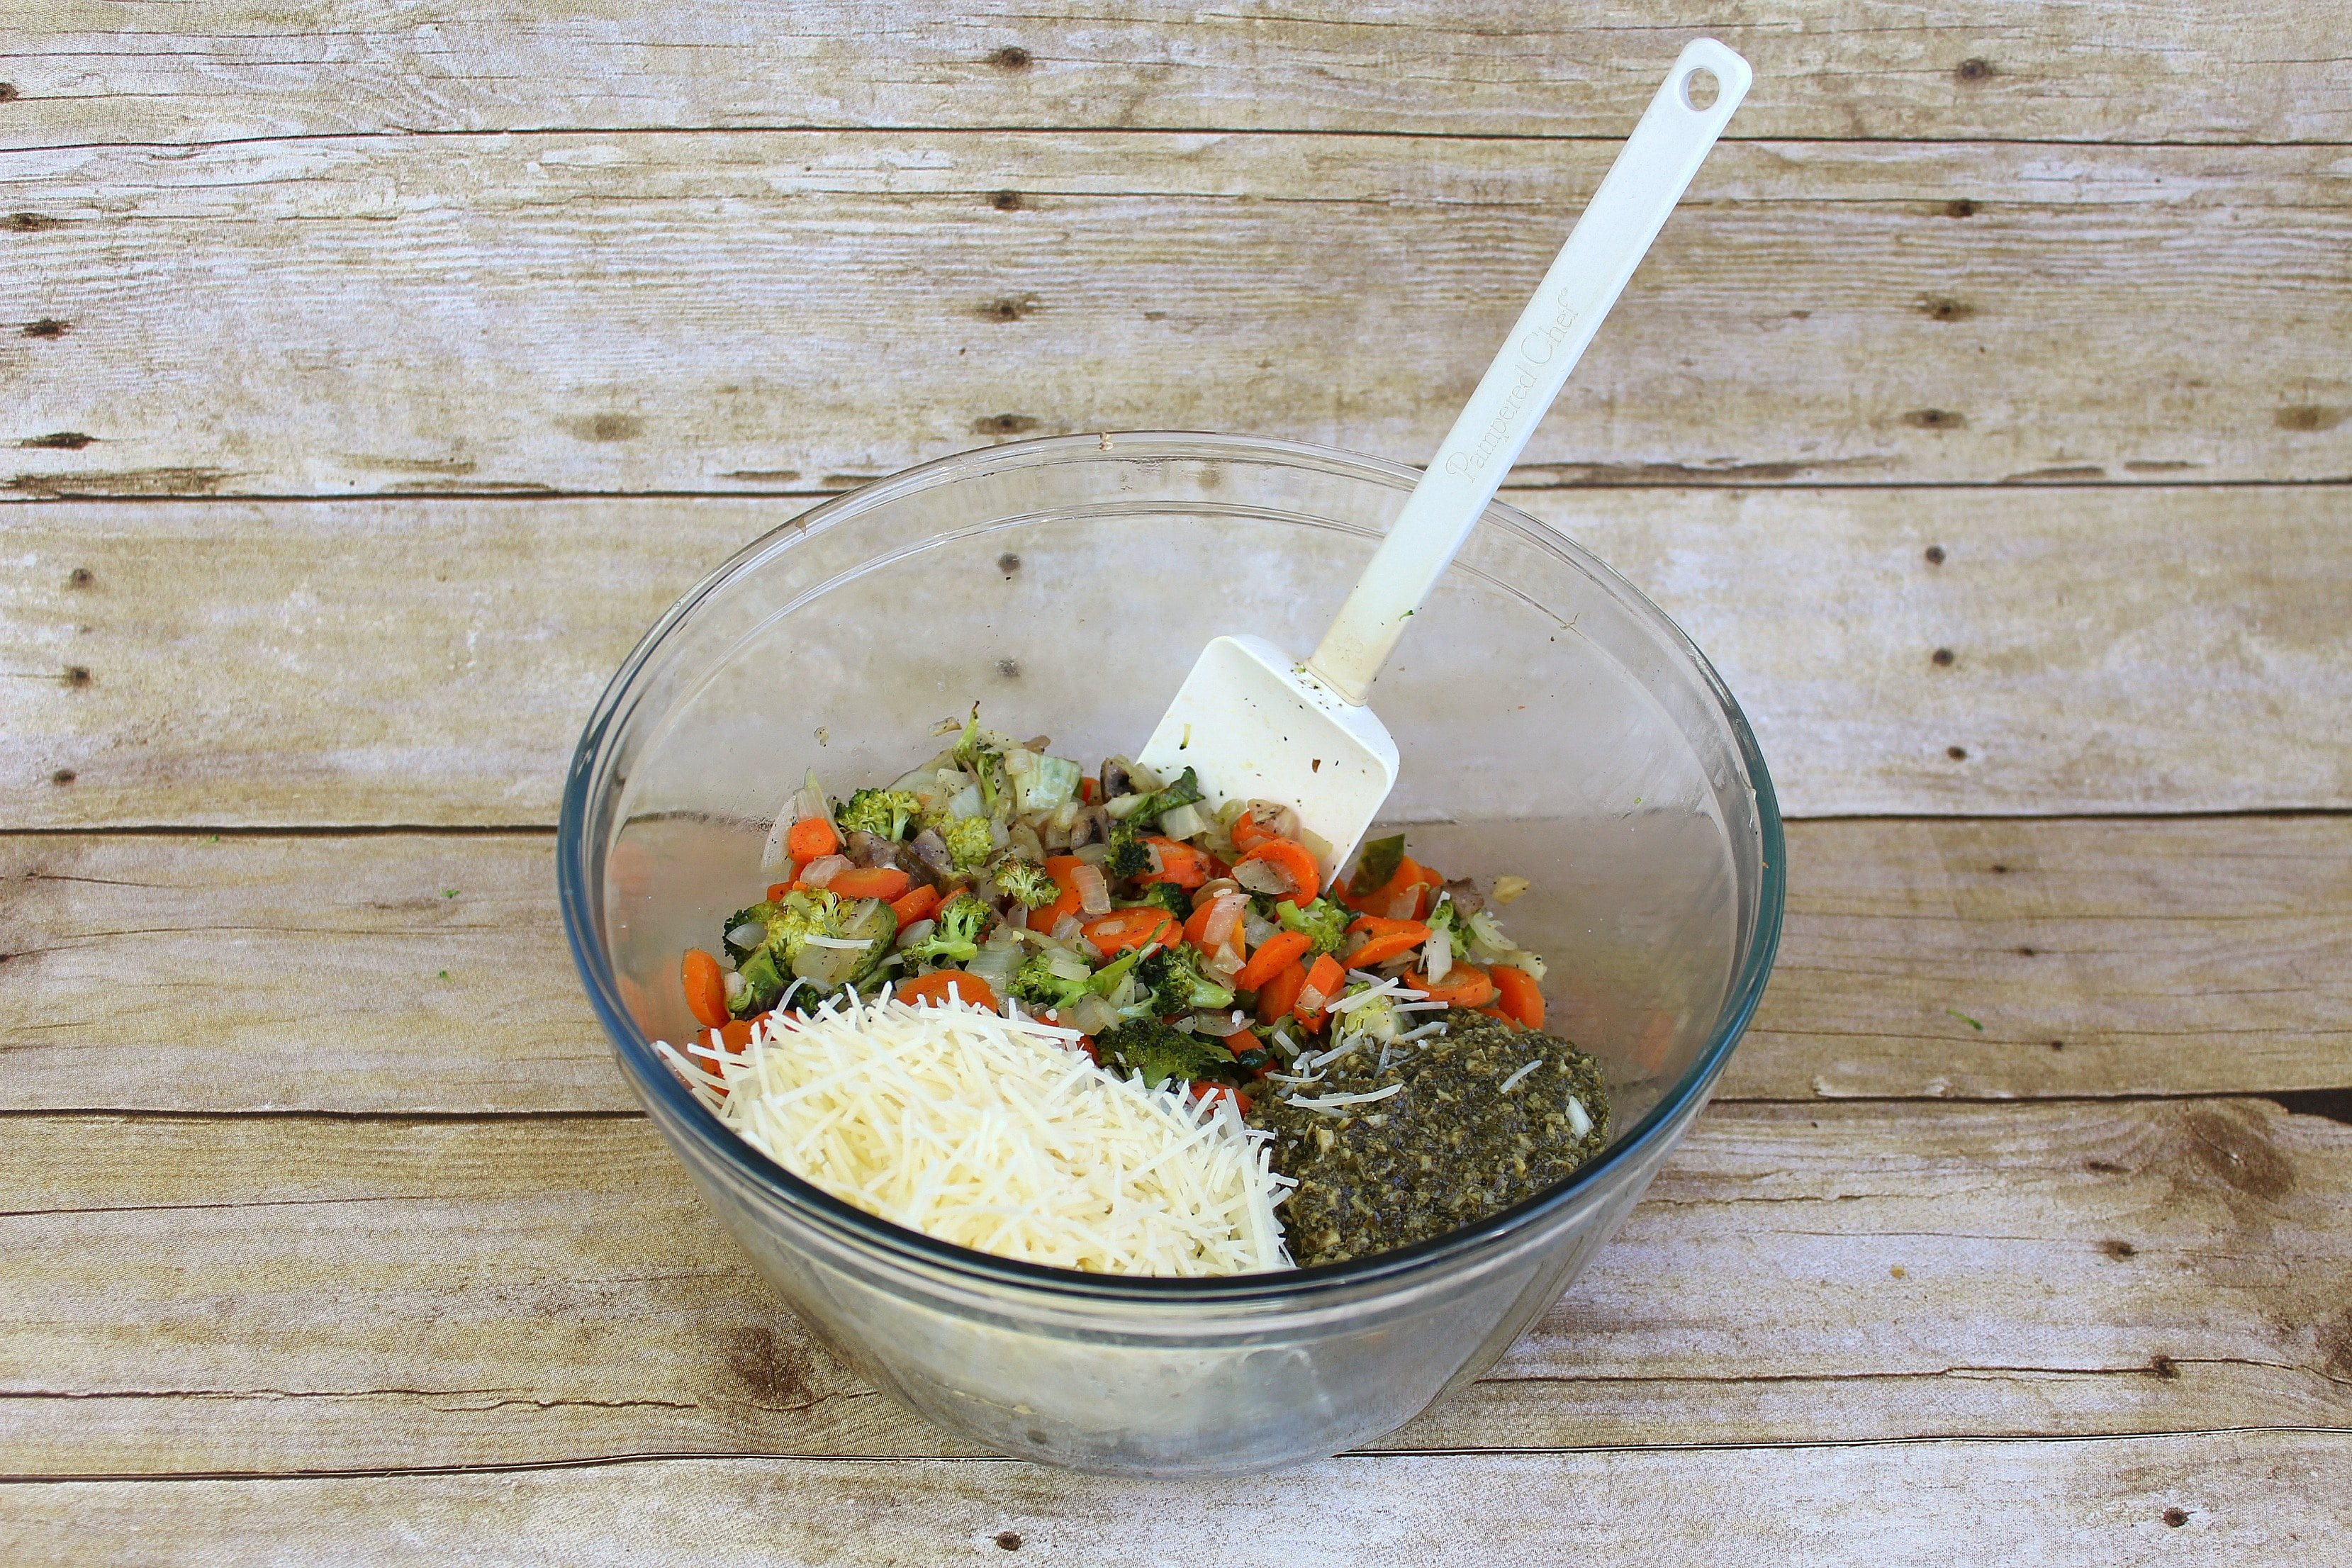 Add pesto and parmesan cheese into the roasted veggie mixture